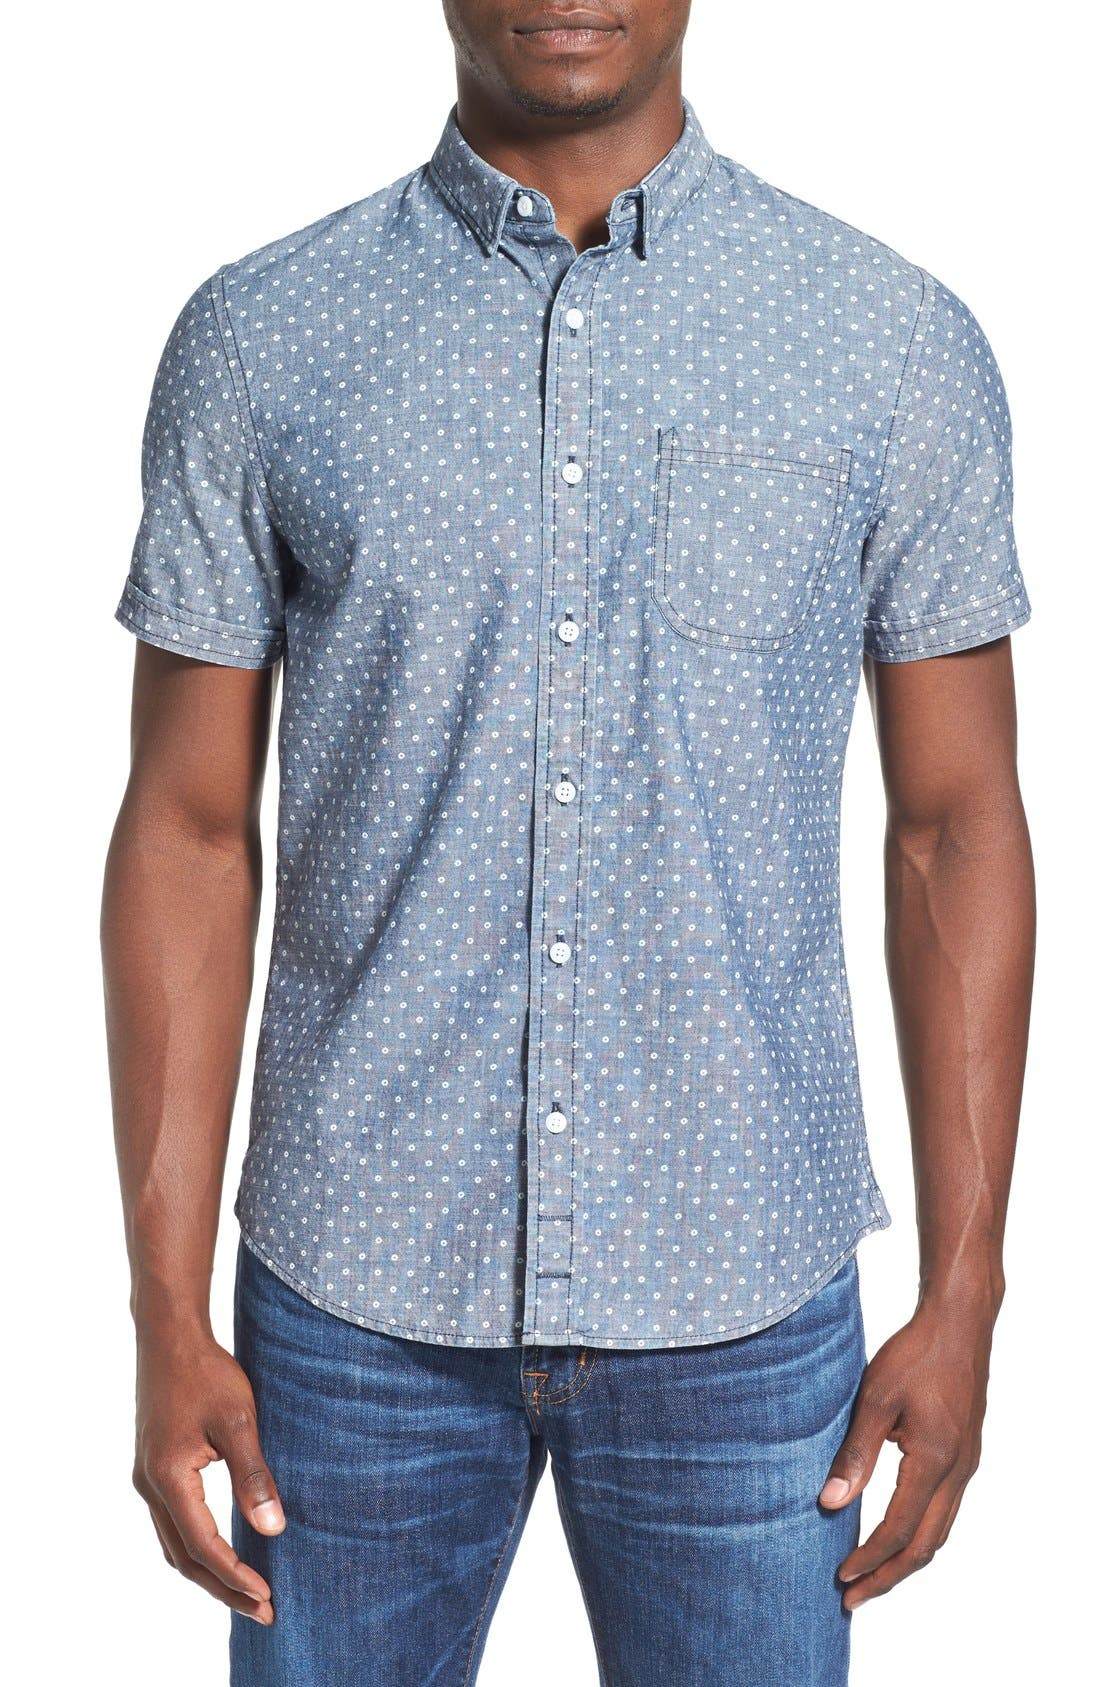 Main Image - 1901 'Whitman' Trim Fit Short Sleeve Dot Print Chambray Shirt